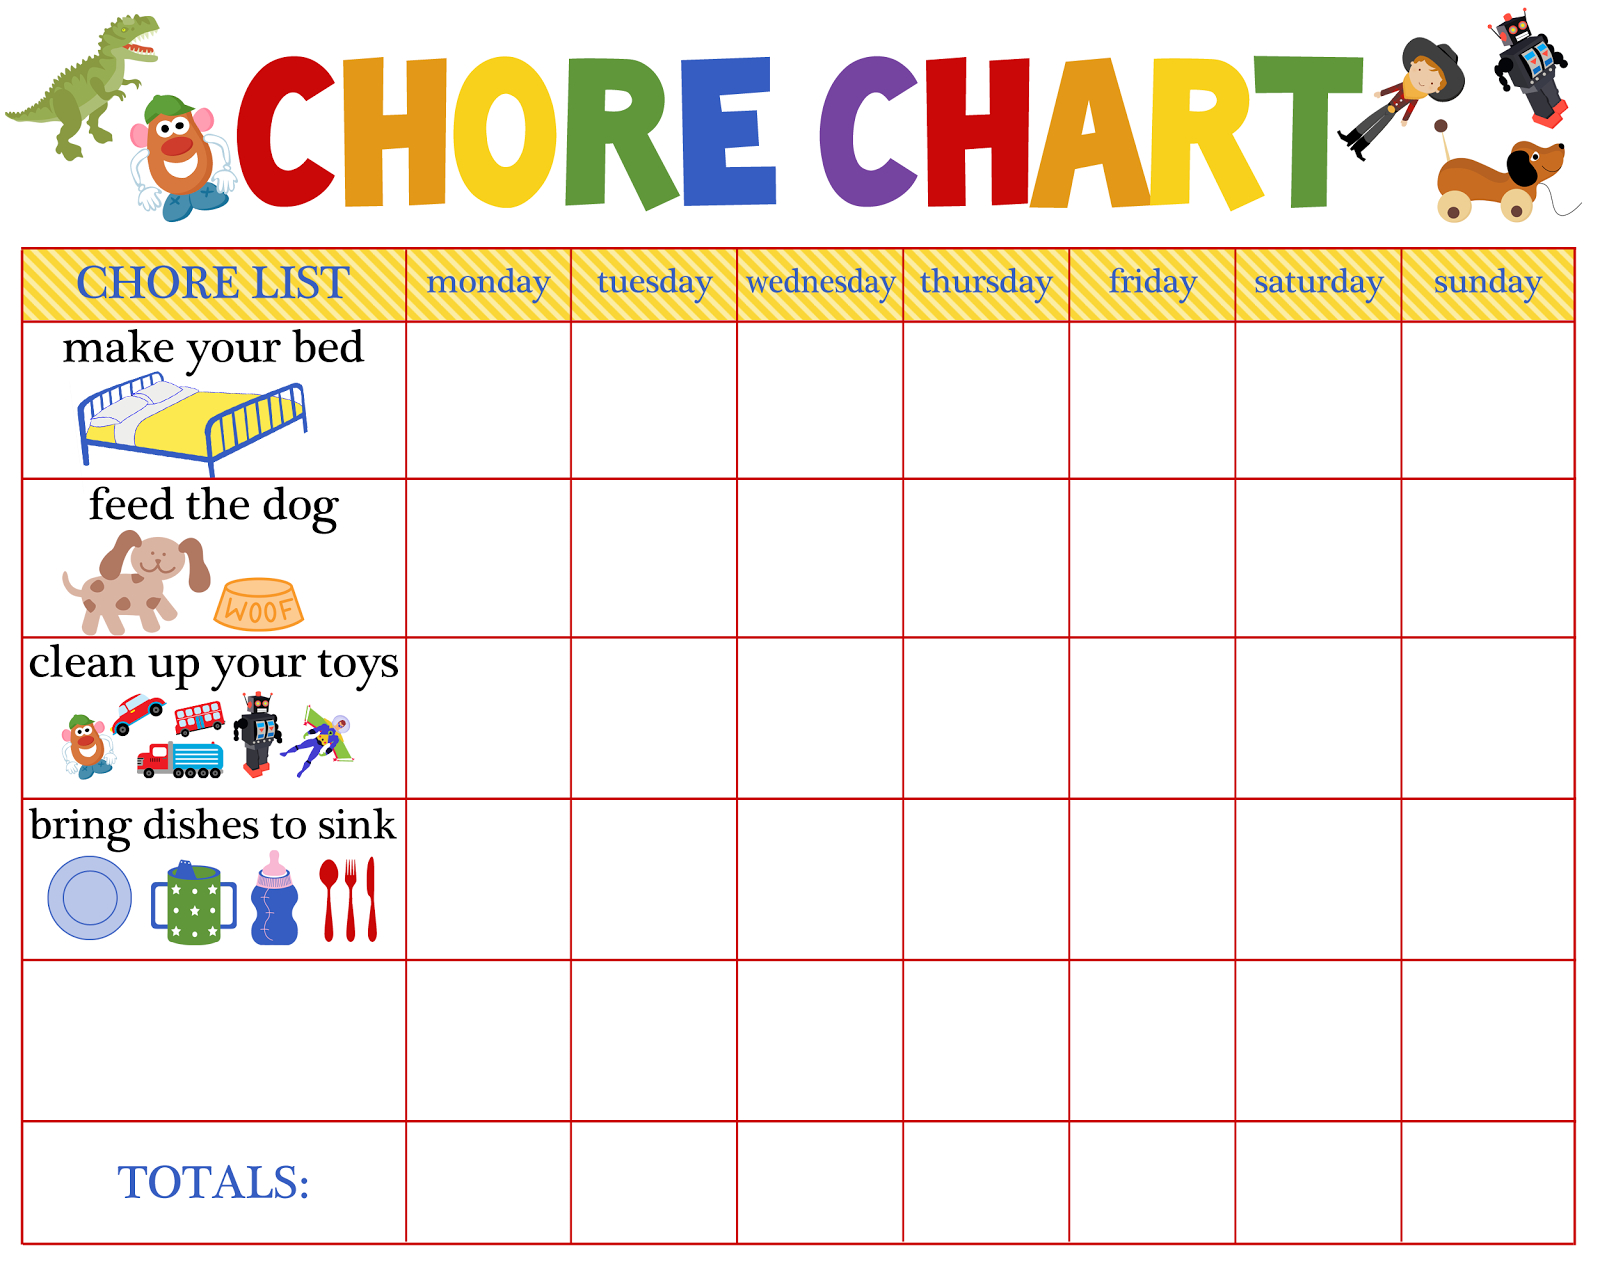 Live.life.lovely.: A Practical Solution To House Cleaning For Moms - Free Printable Chore Charts For 10 Year Olds